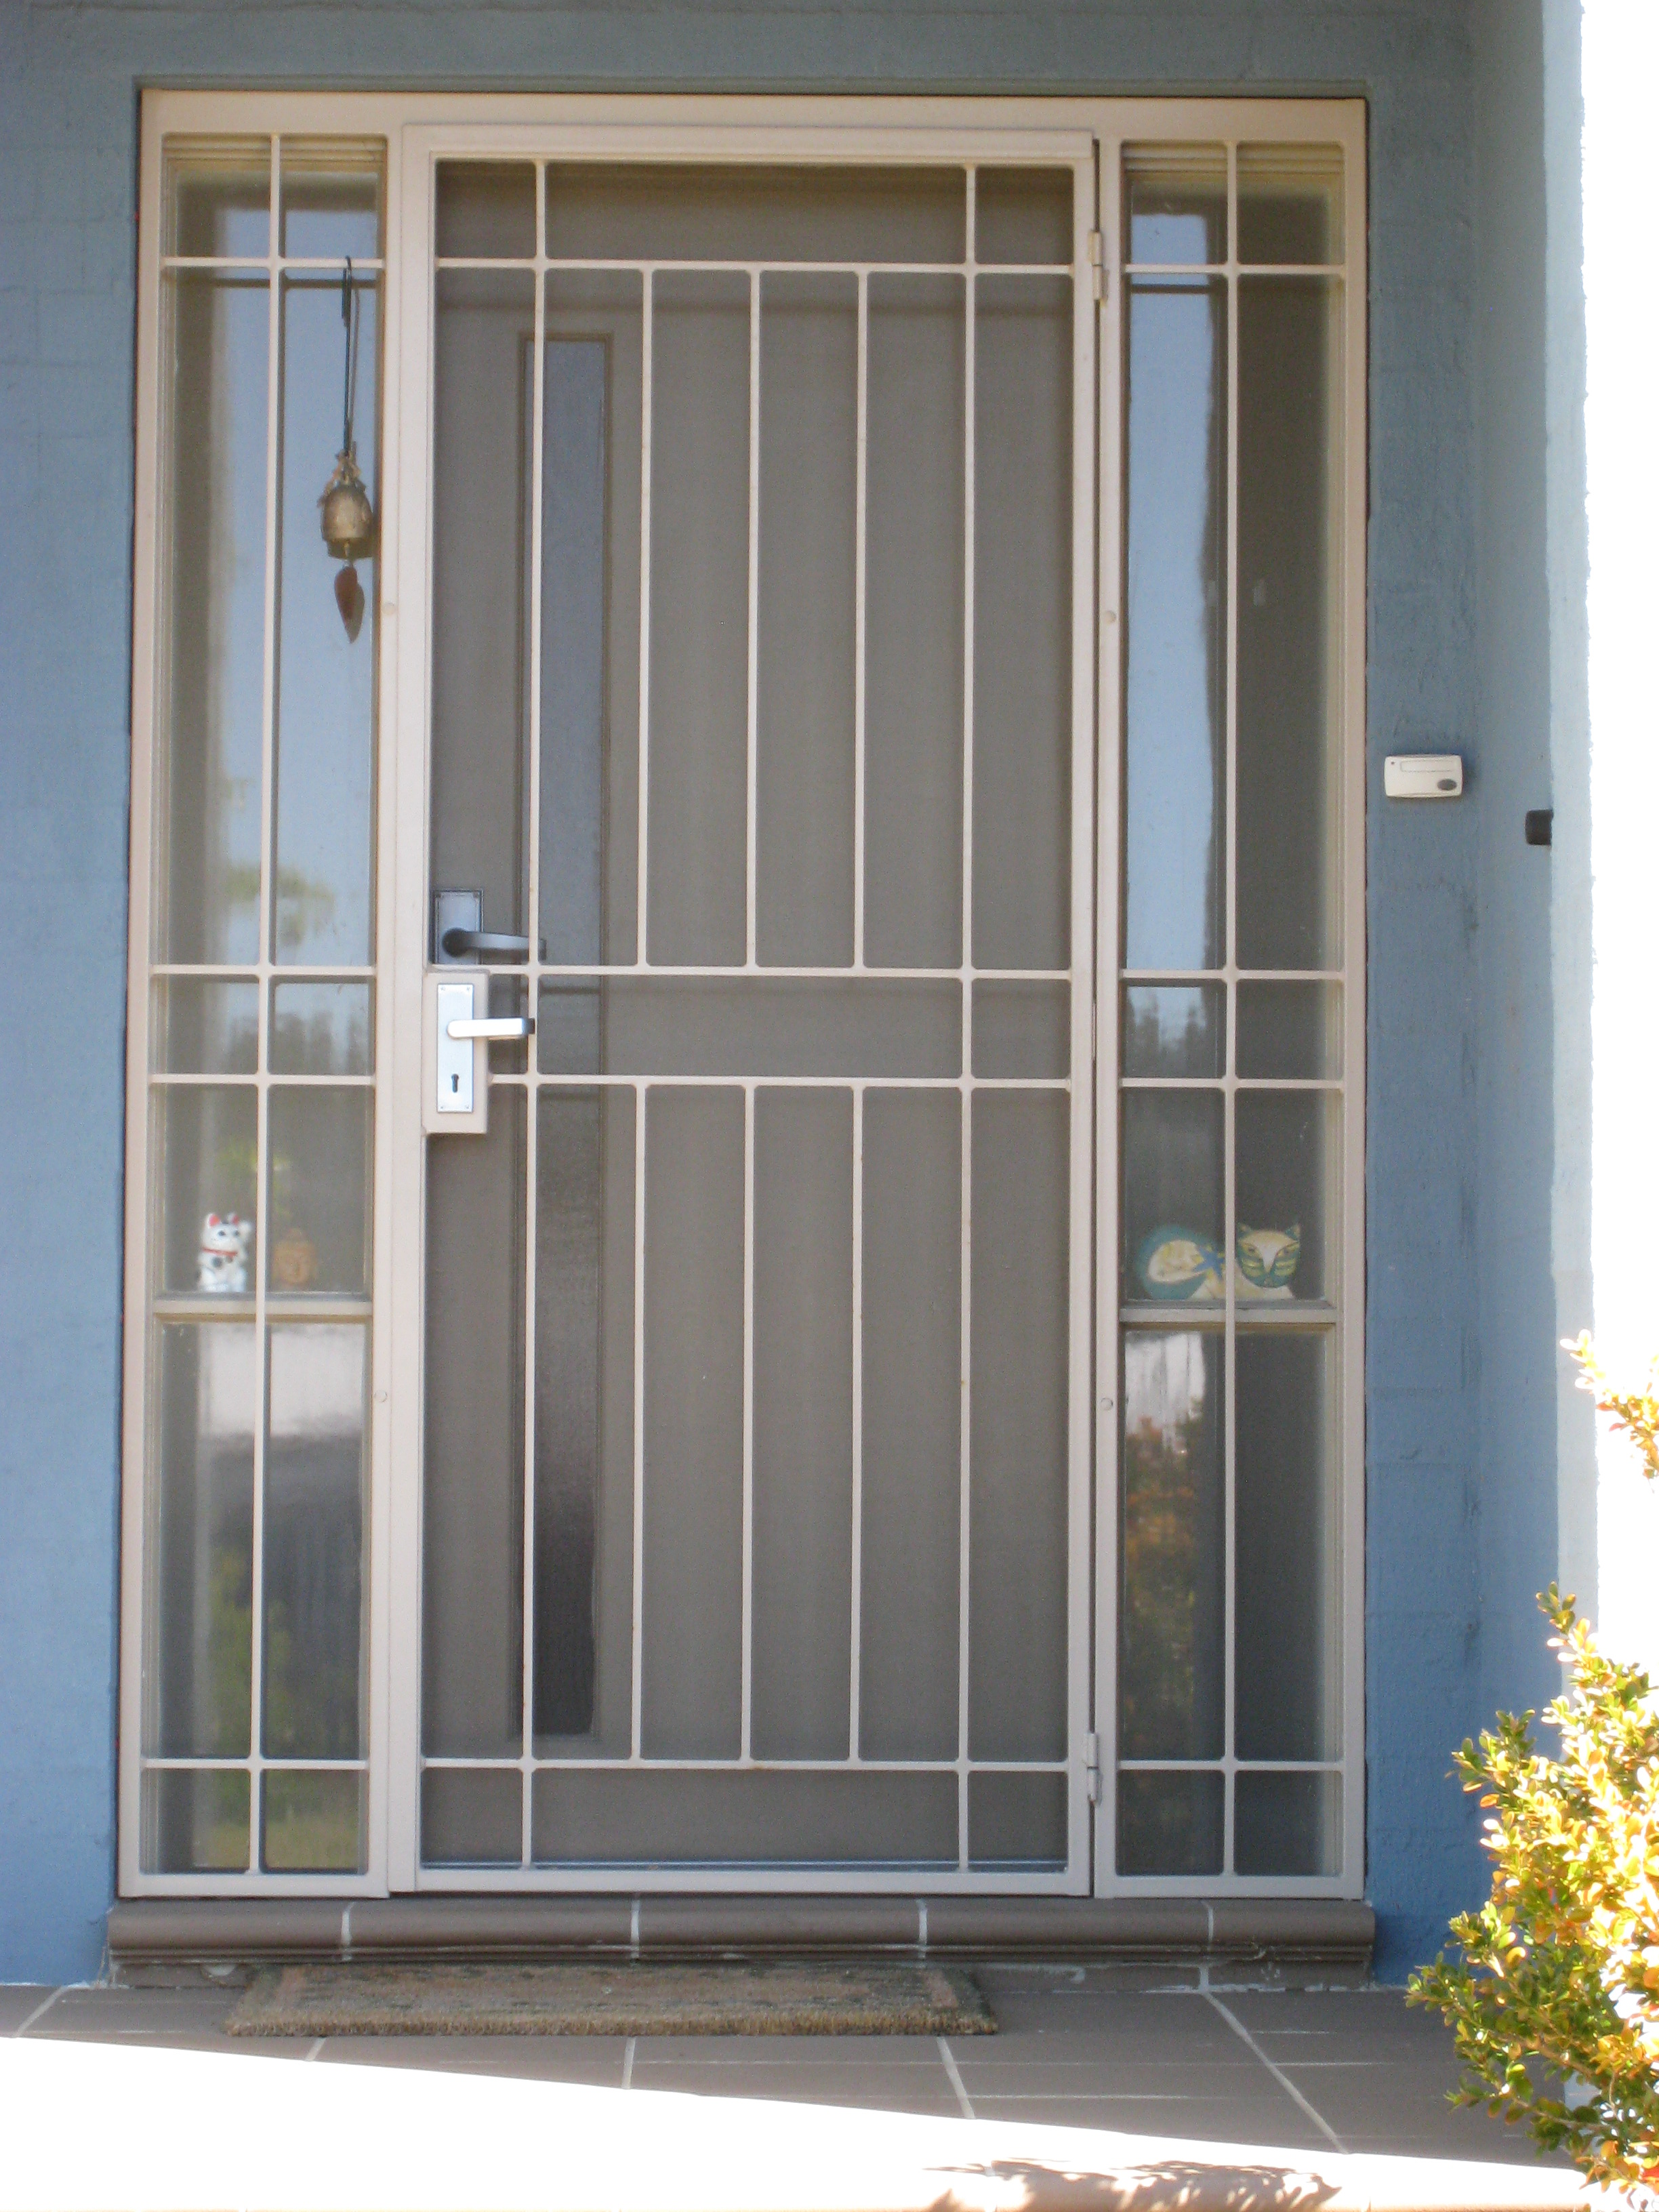 Unique design security doors homesfeed for Metal window designs